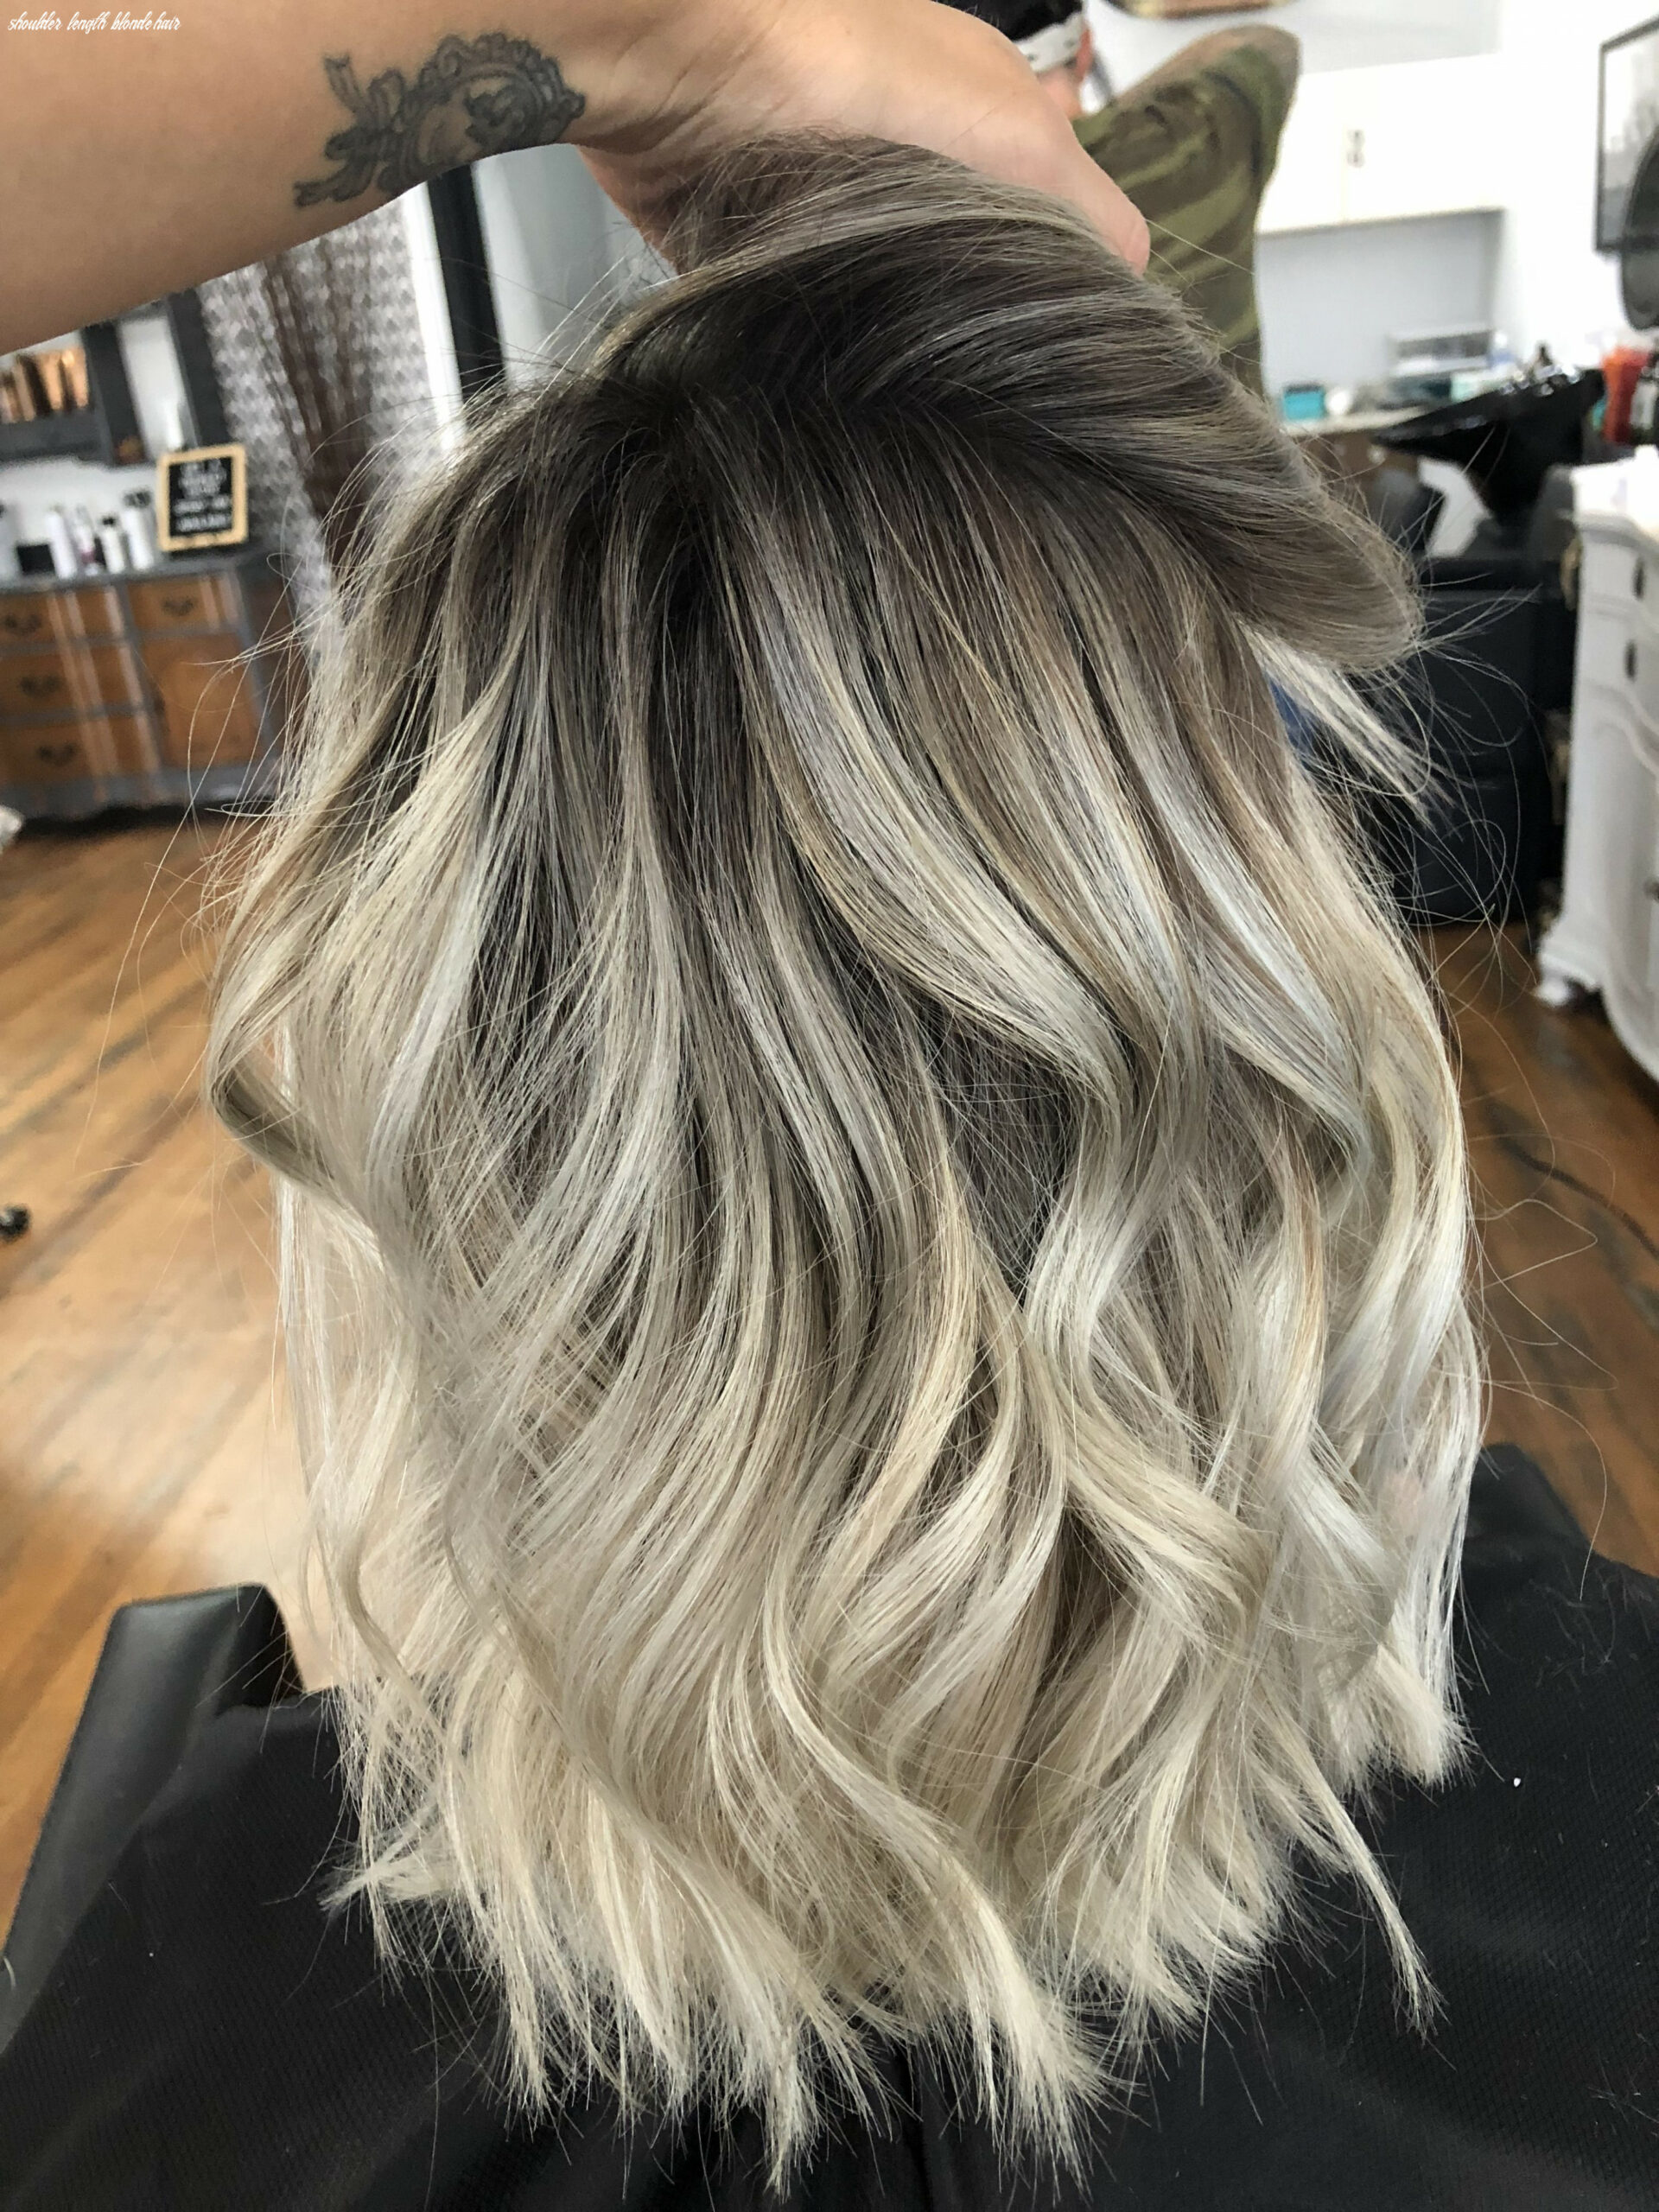 Shoulder length blonde balayage | mid length blonde hair, shoulder